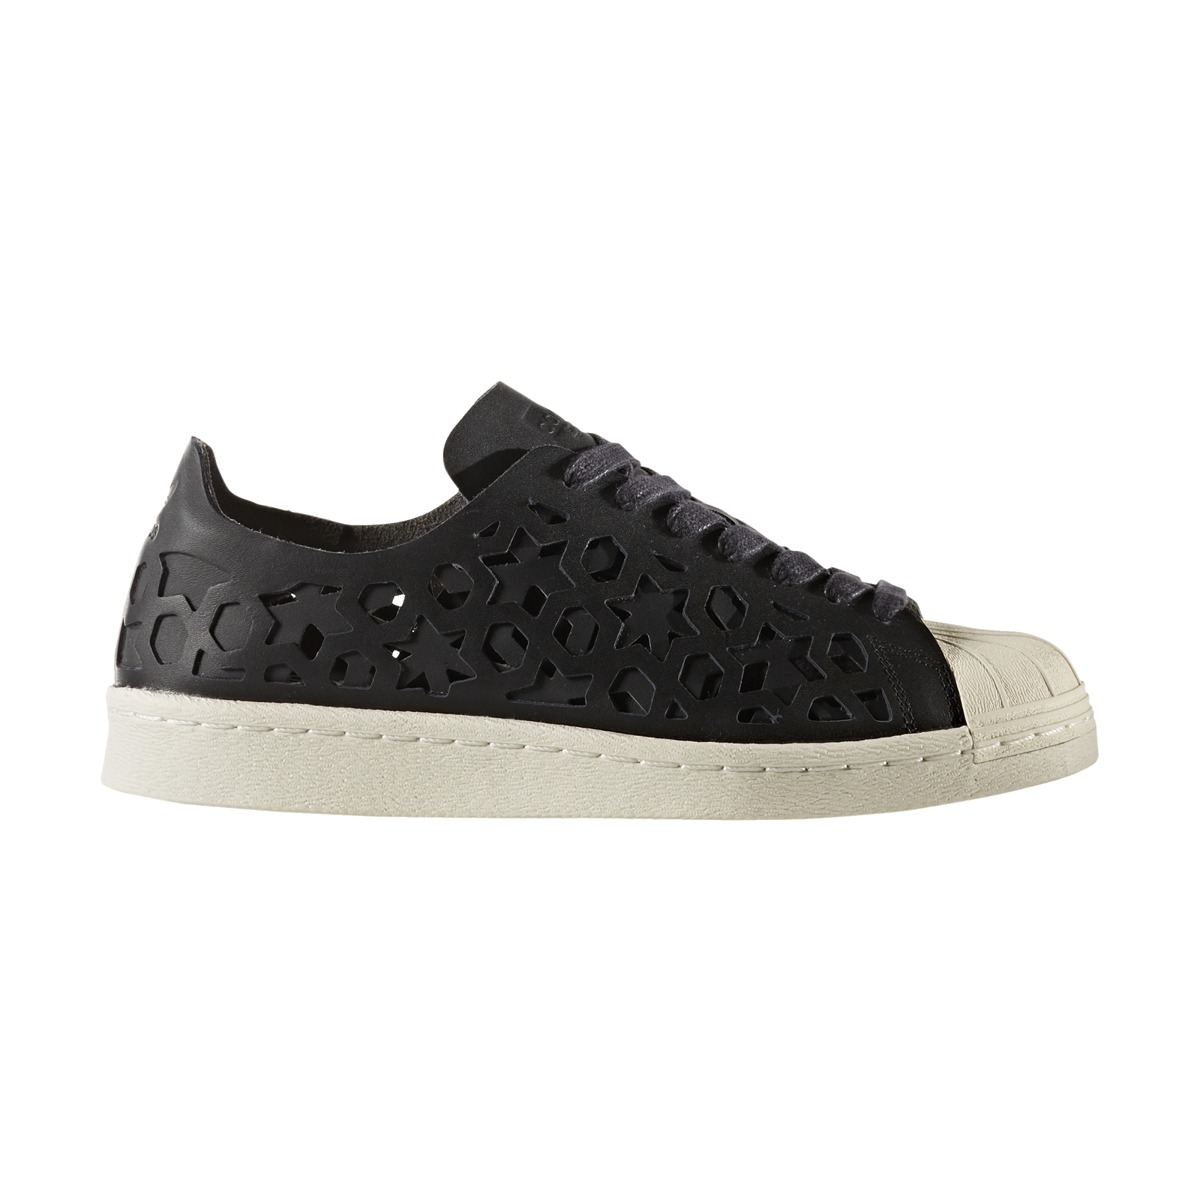 low priced 937a2 97009 zapatillas adidas originals superstar 80s cut out w mujer ng. Cargando zoom.